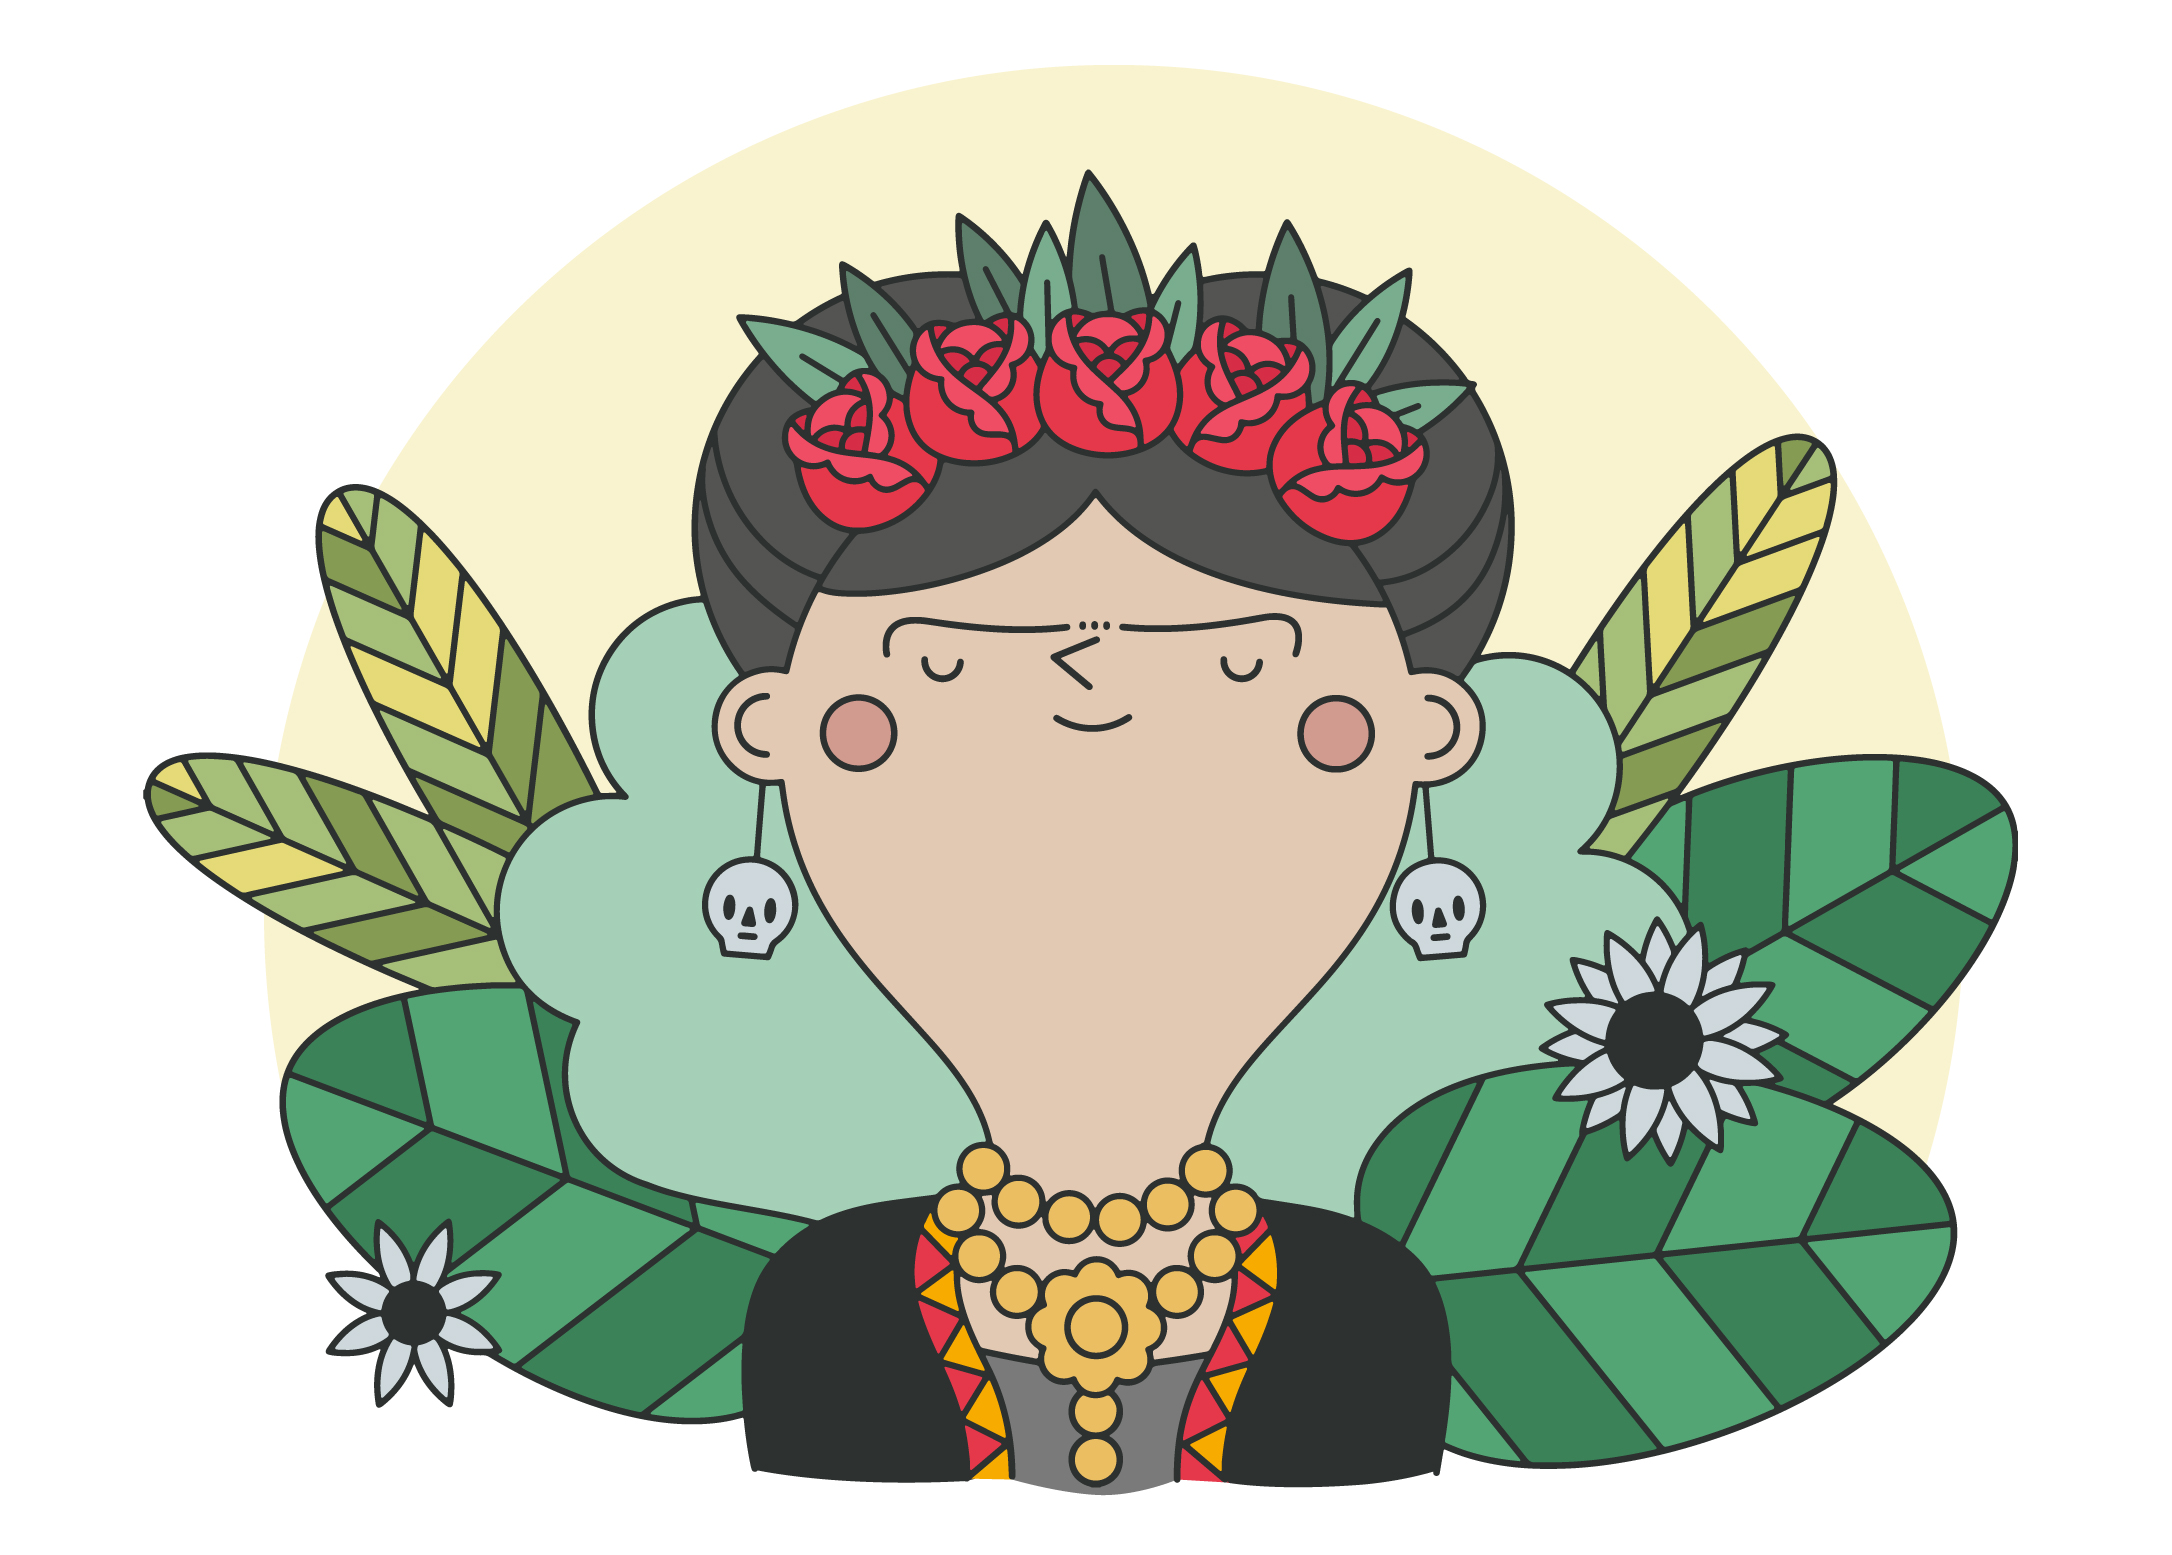 Frida Kalo Para Colorear: Download Free Vector Art, Stock